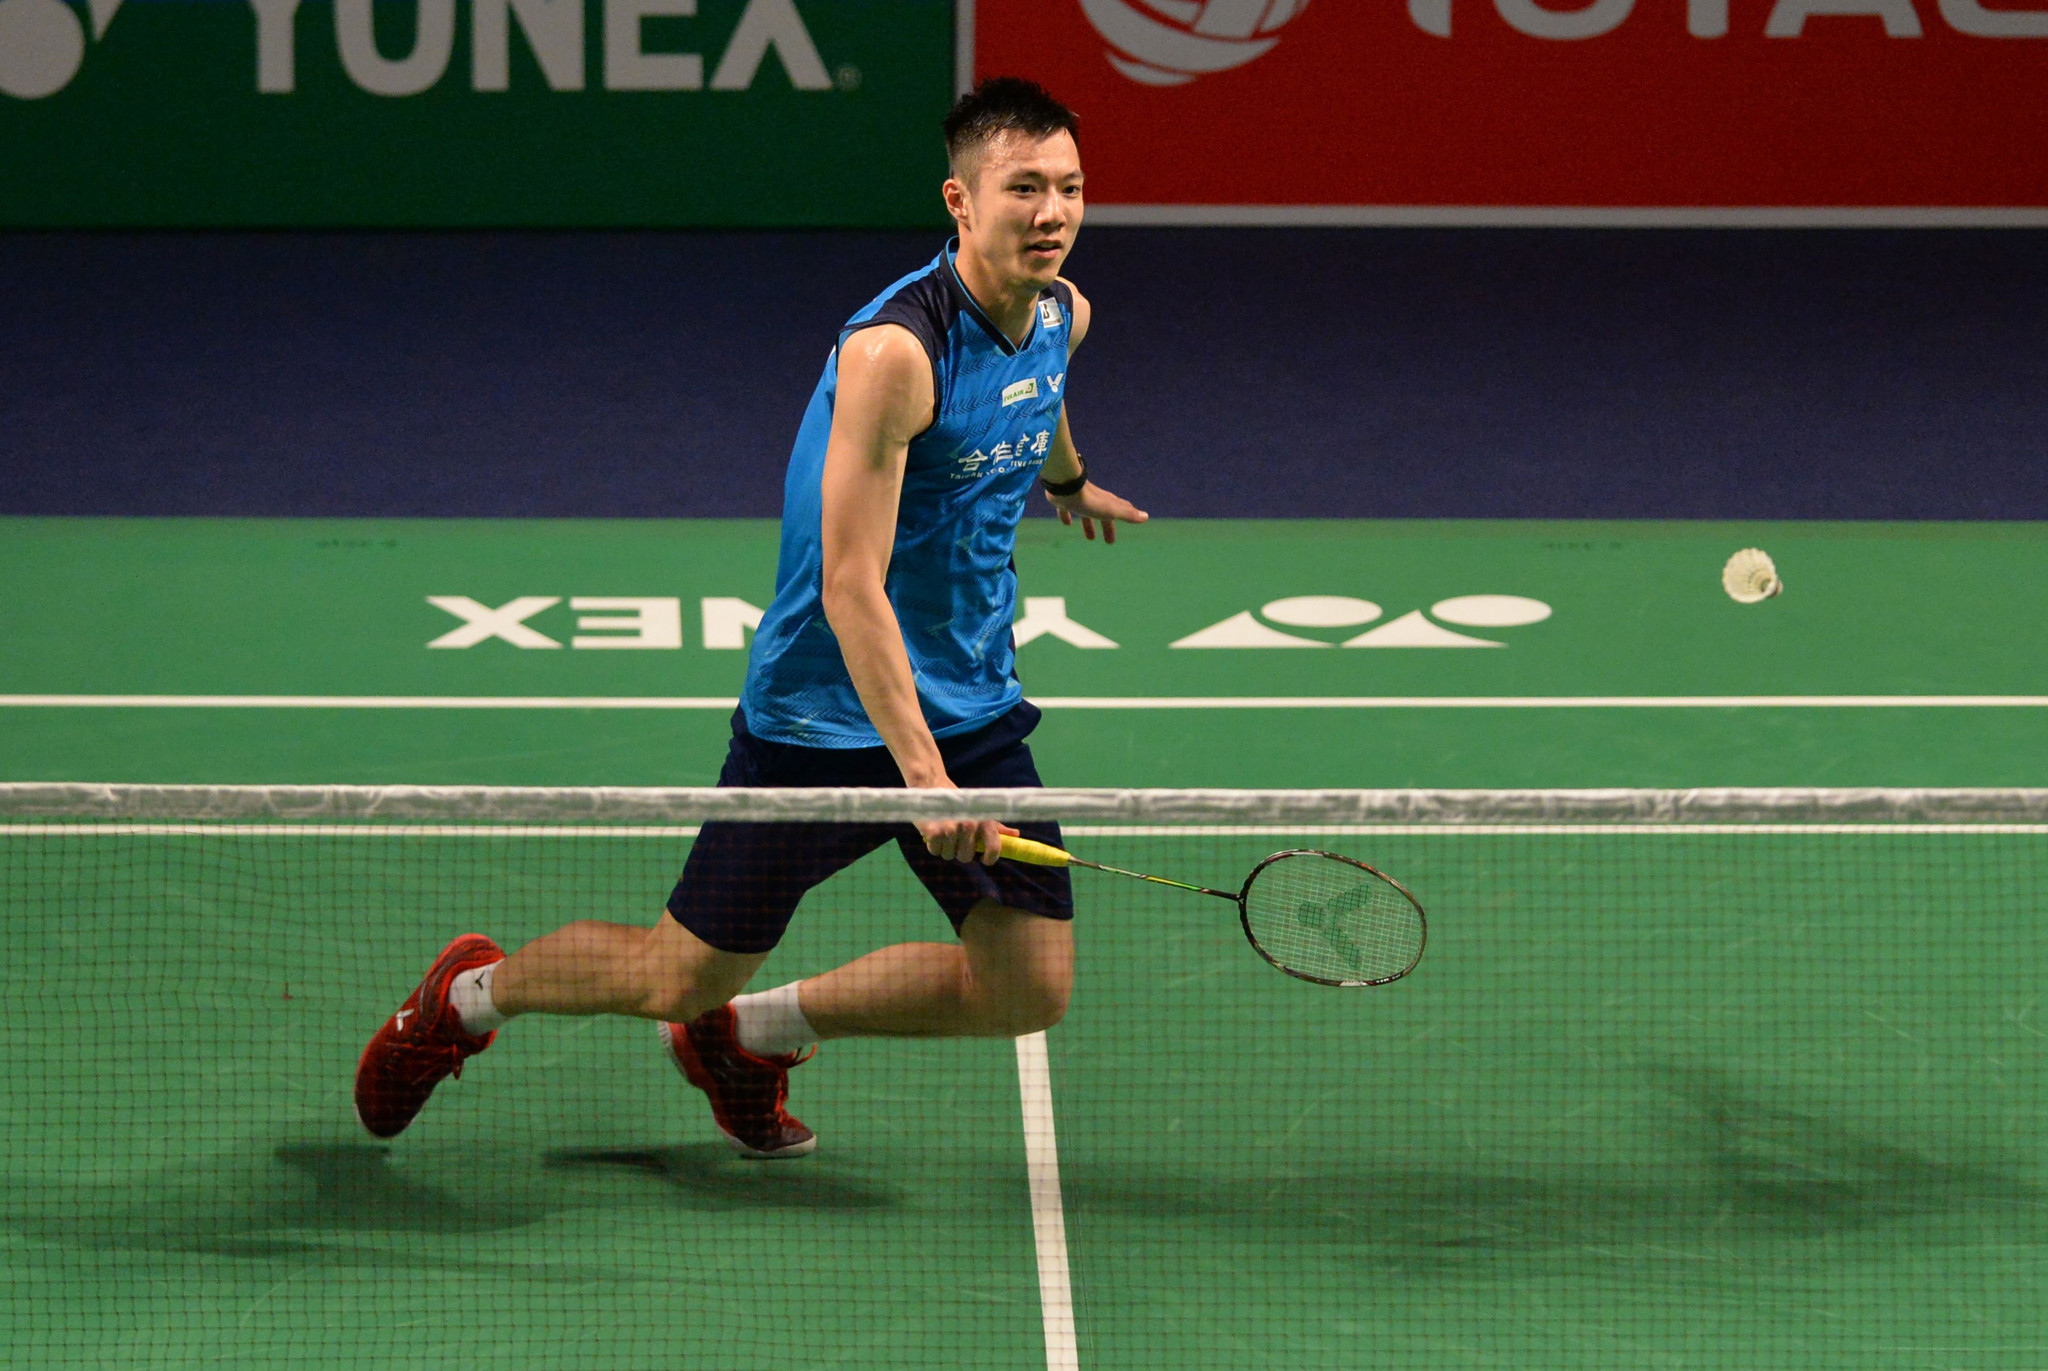 Chinese Taipei's fourth seed Wang Tzu-Wei cruised into the semi-finals of the men's singles event ©Getty Images